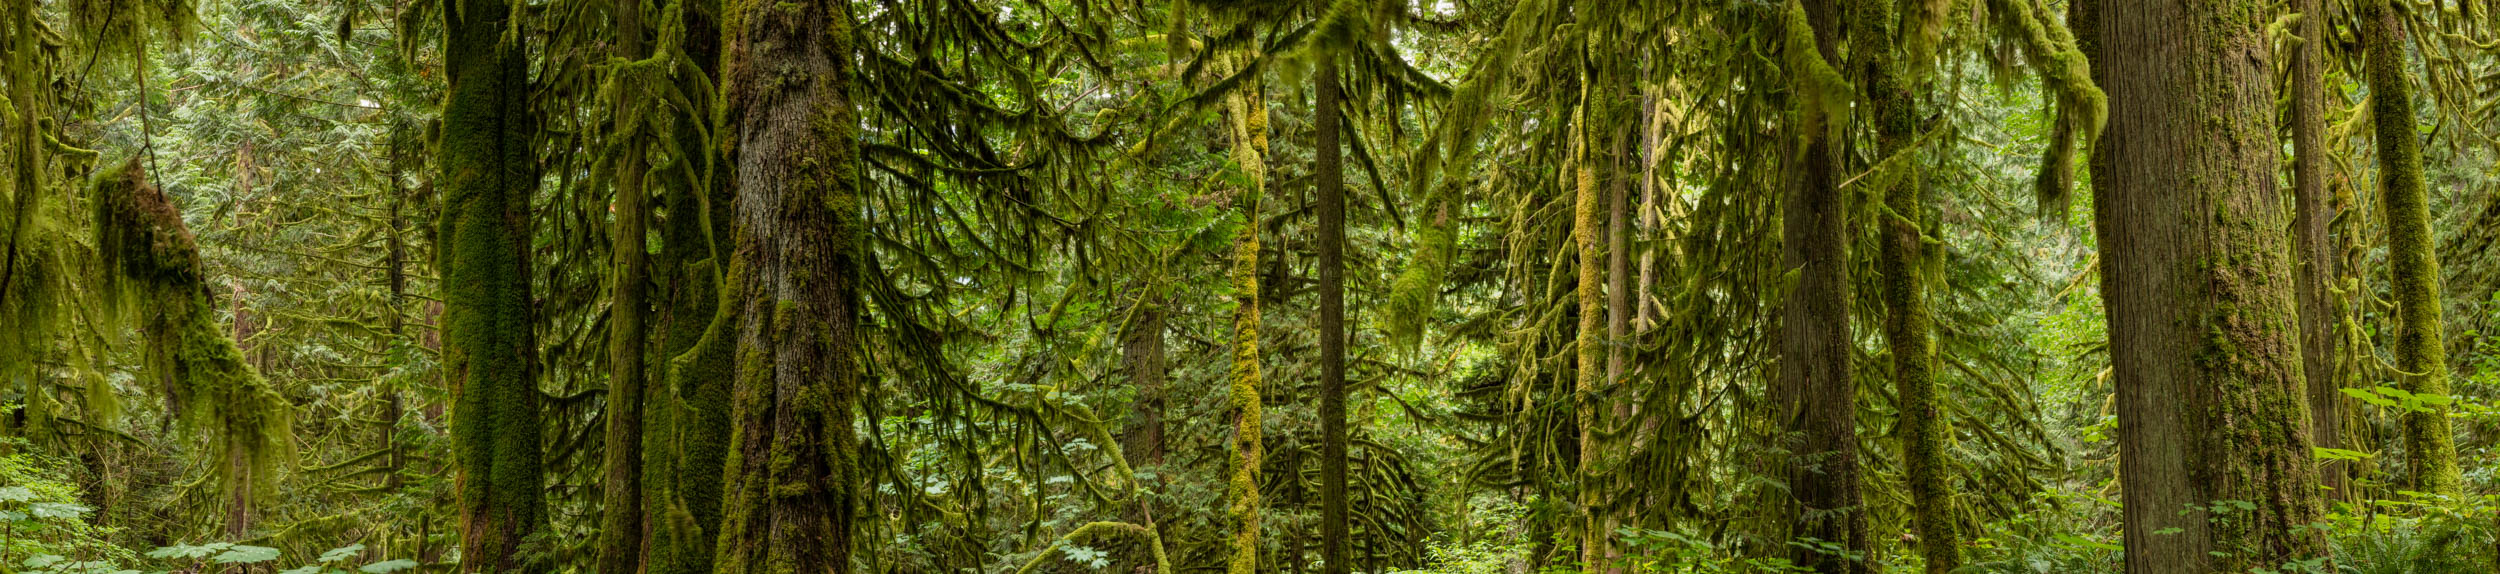 Old Growth Study 907